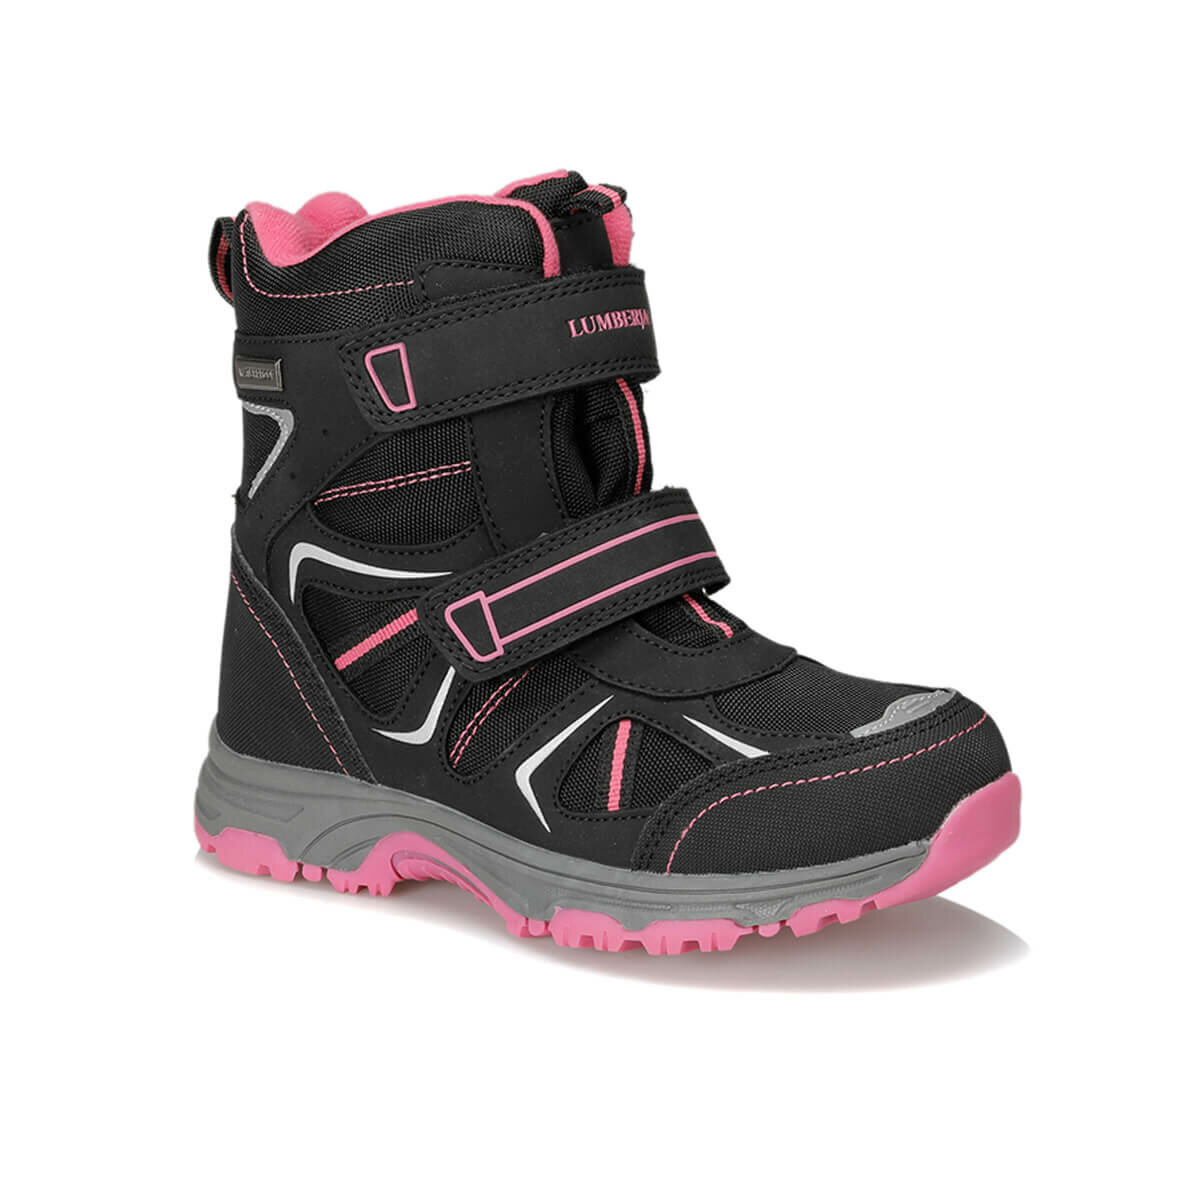 FLO LIGHT 9PR Black Girls Child Outdoors Boots LUMBERJACK